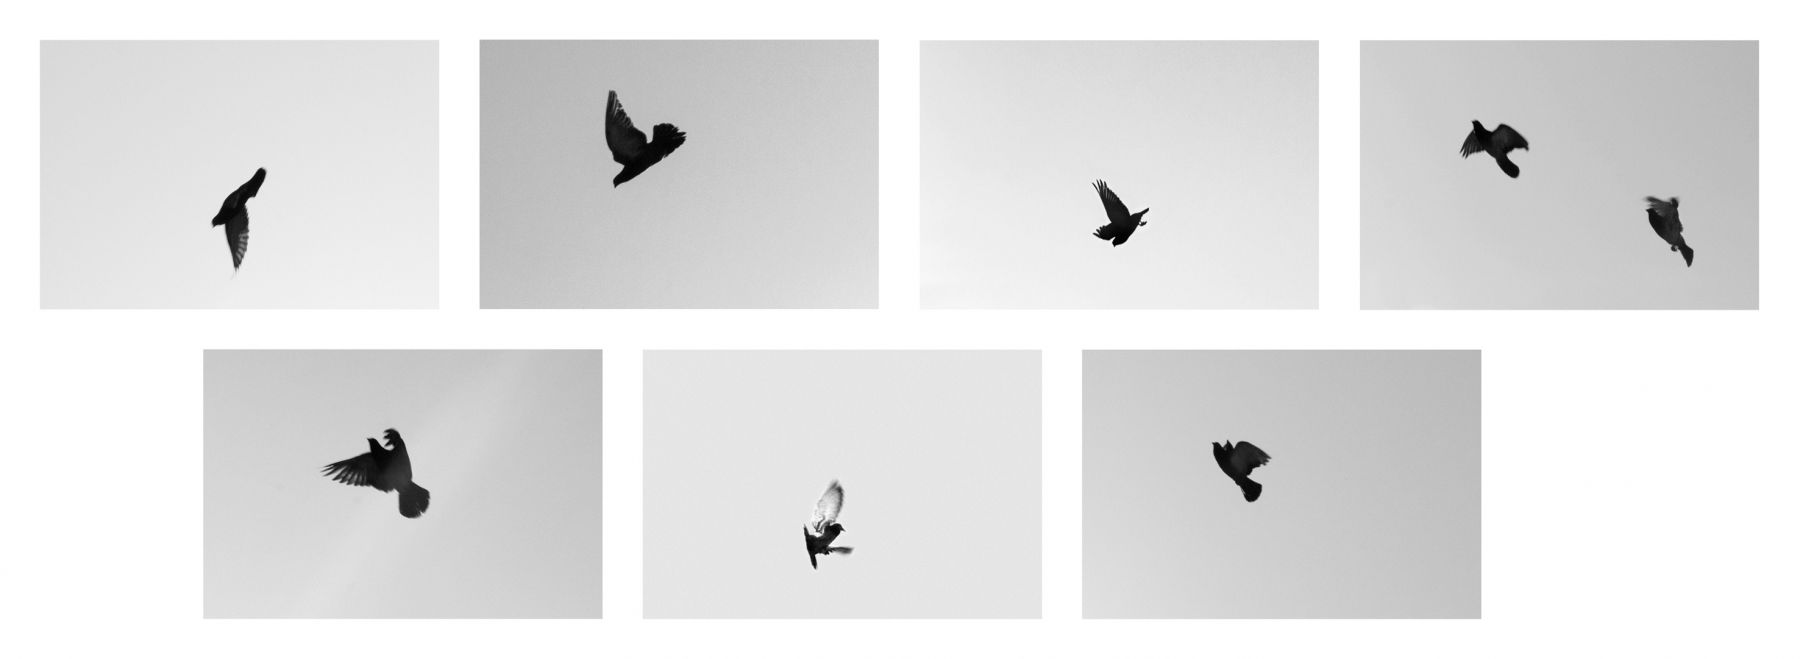 SHANNON EBNER  SIGNAL ESCAPES 2017 Archival Pigment Print mounted on aluminum, 7 parts  Ed. 1/5 + 2 AP Each 34.5 x 51 cm / 13 1/2 x 20 in  EBNER43508